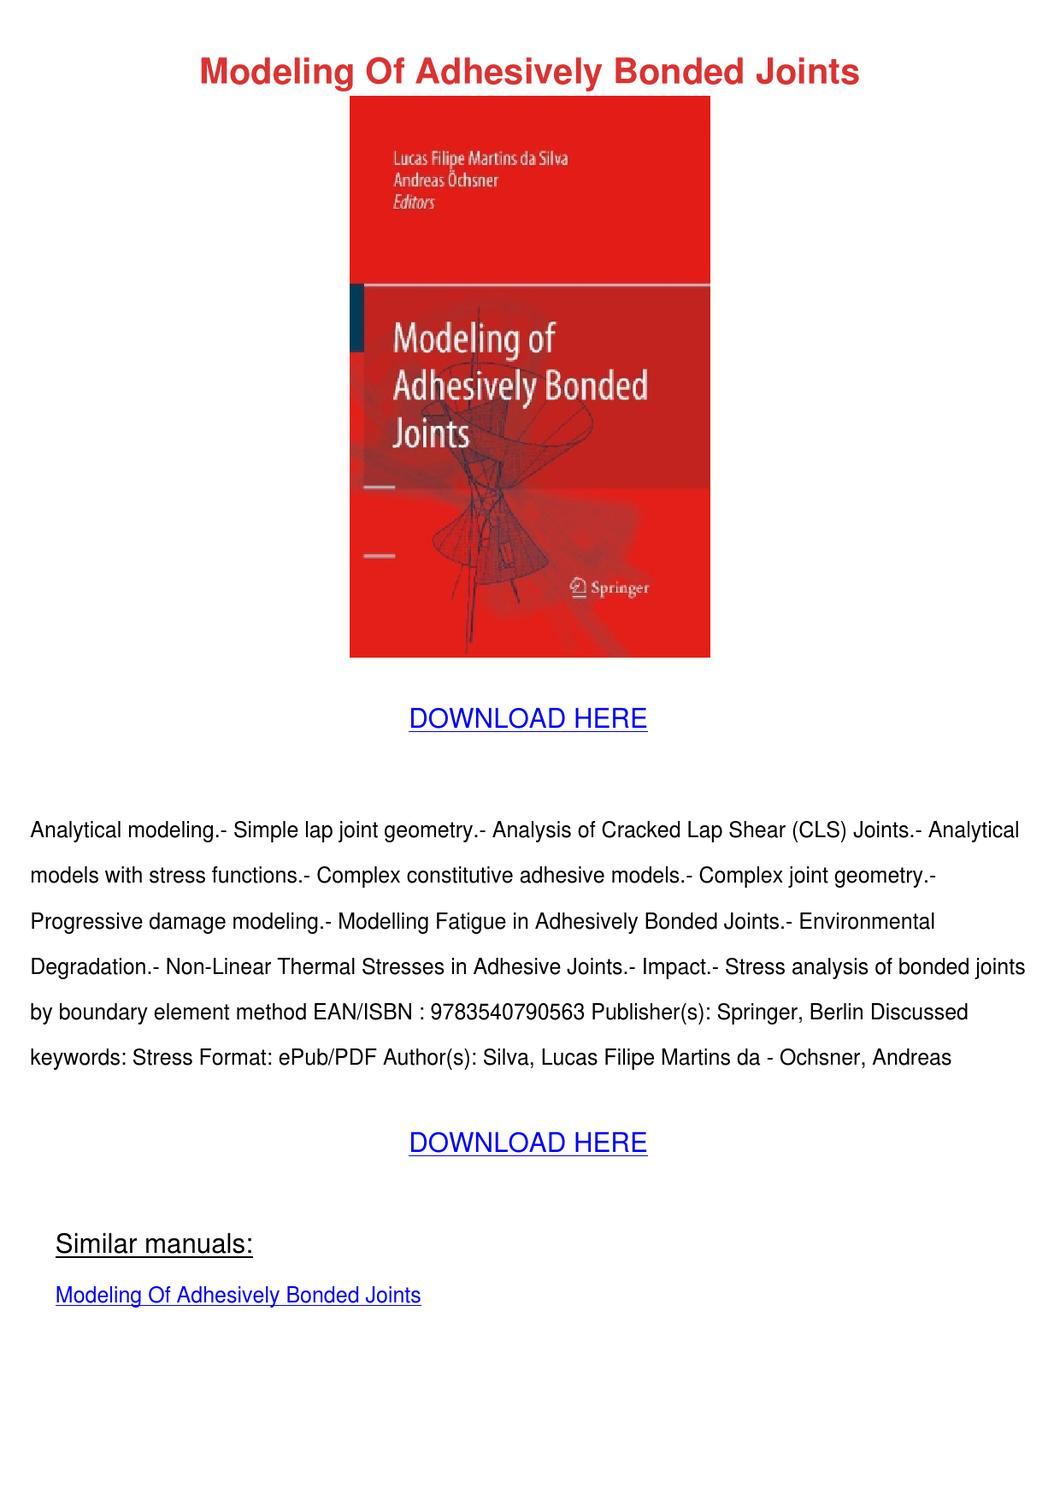 Modeling Of Adhesively Bonded Joints by Ingeborg